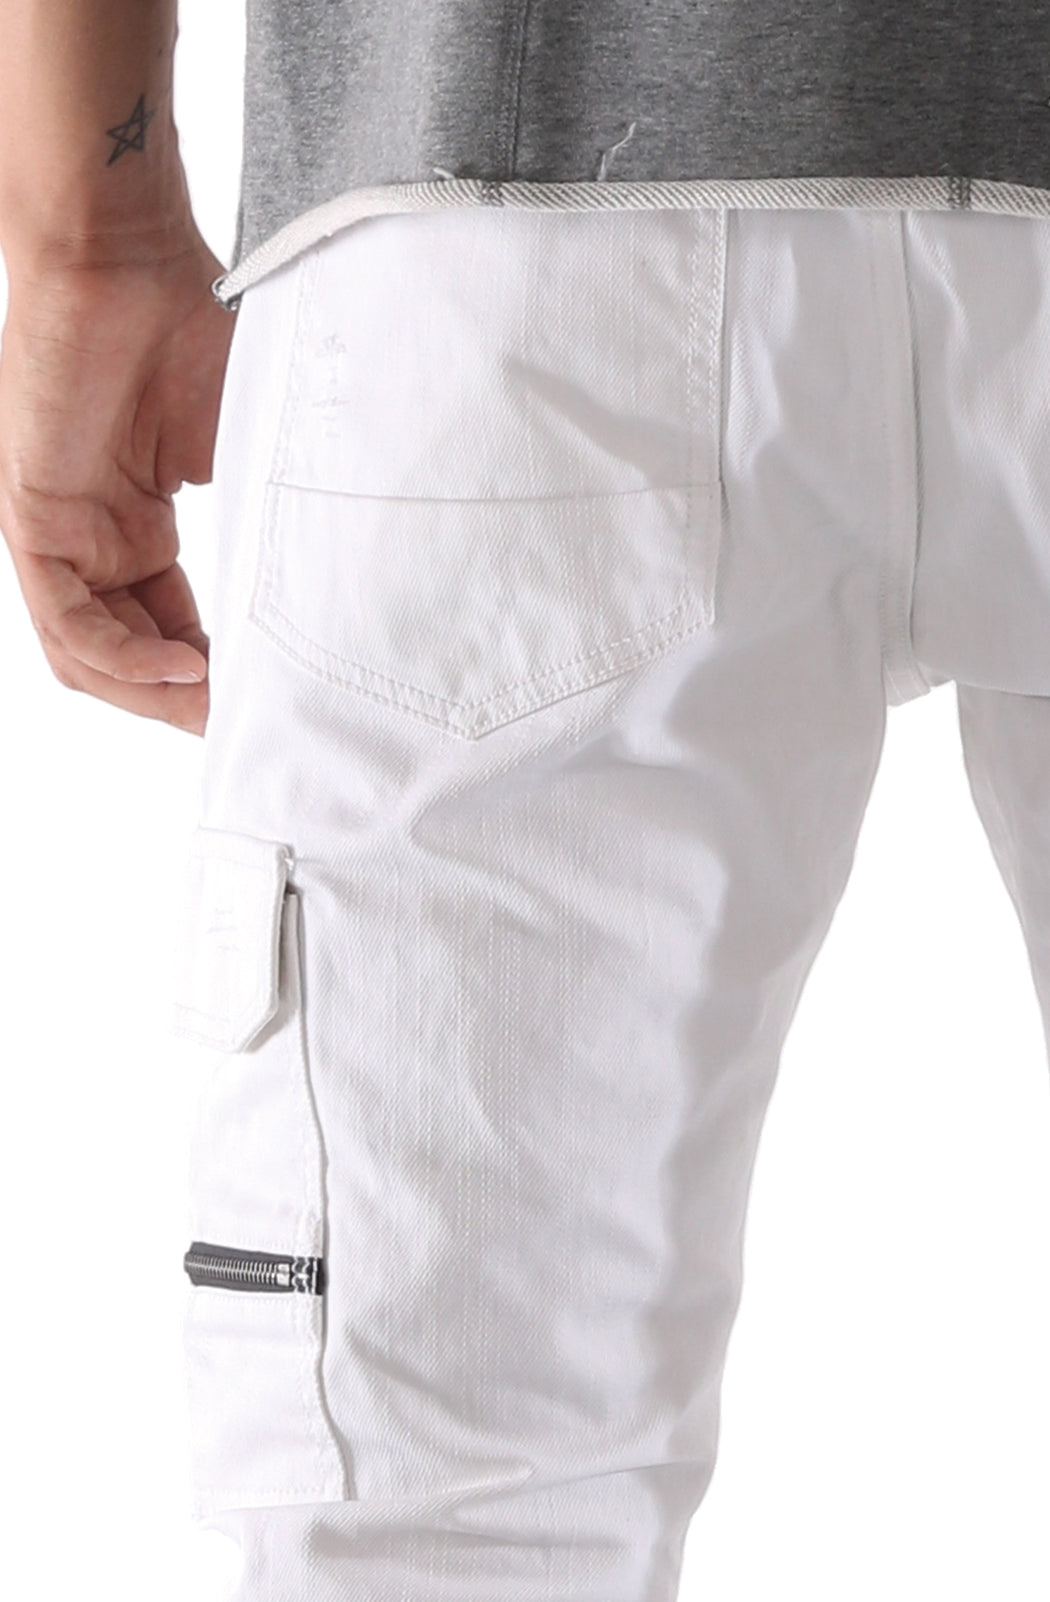 The SQZ Premium Moto Inspired Skinny Pants in White Wax (GD-2215-White)